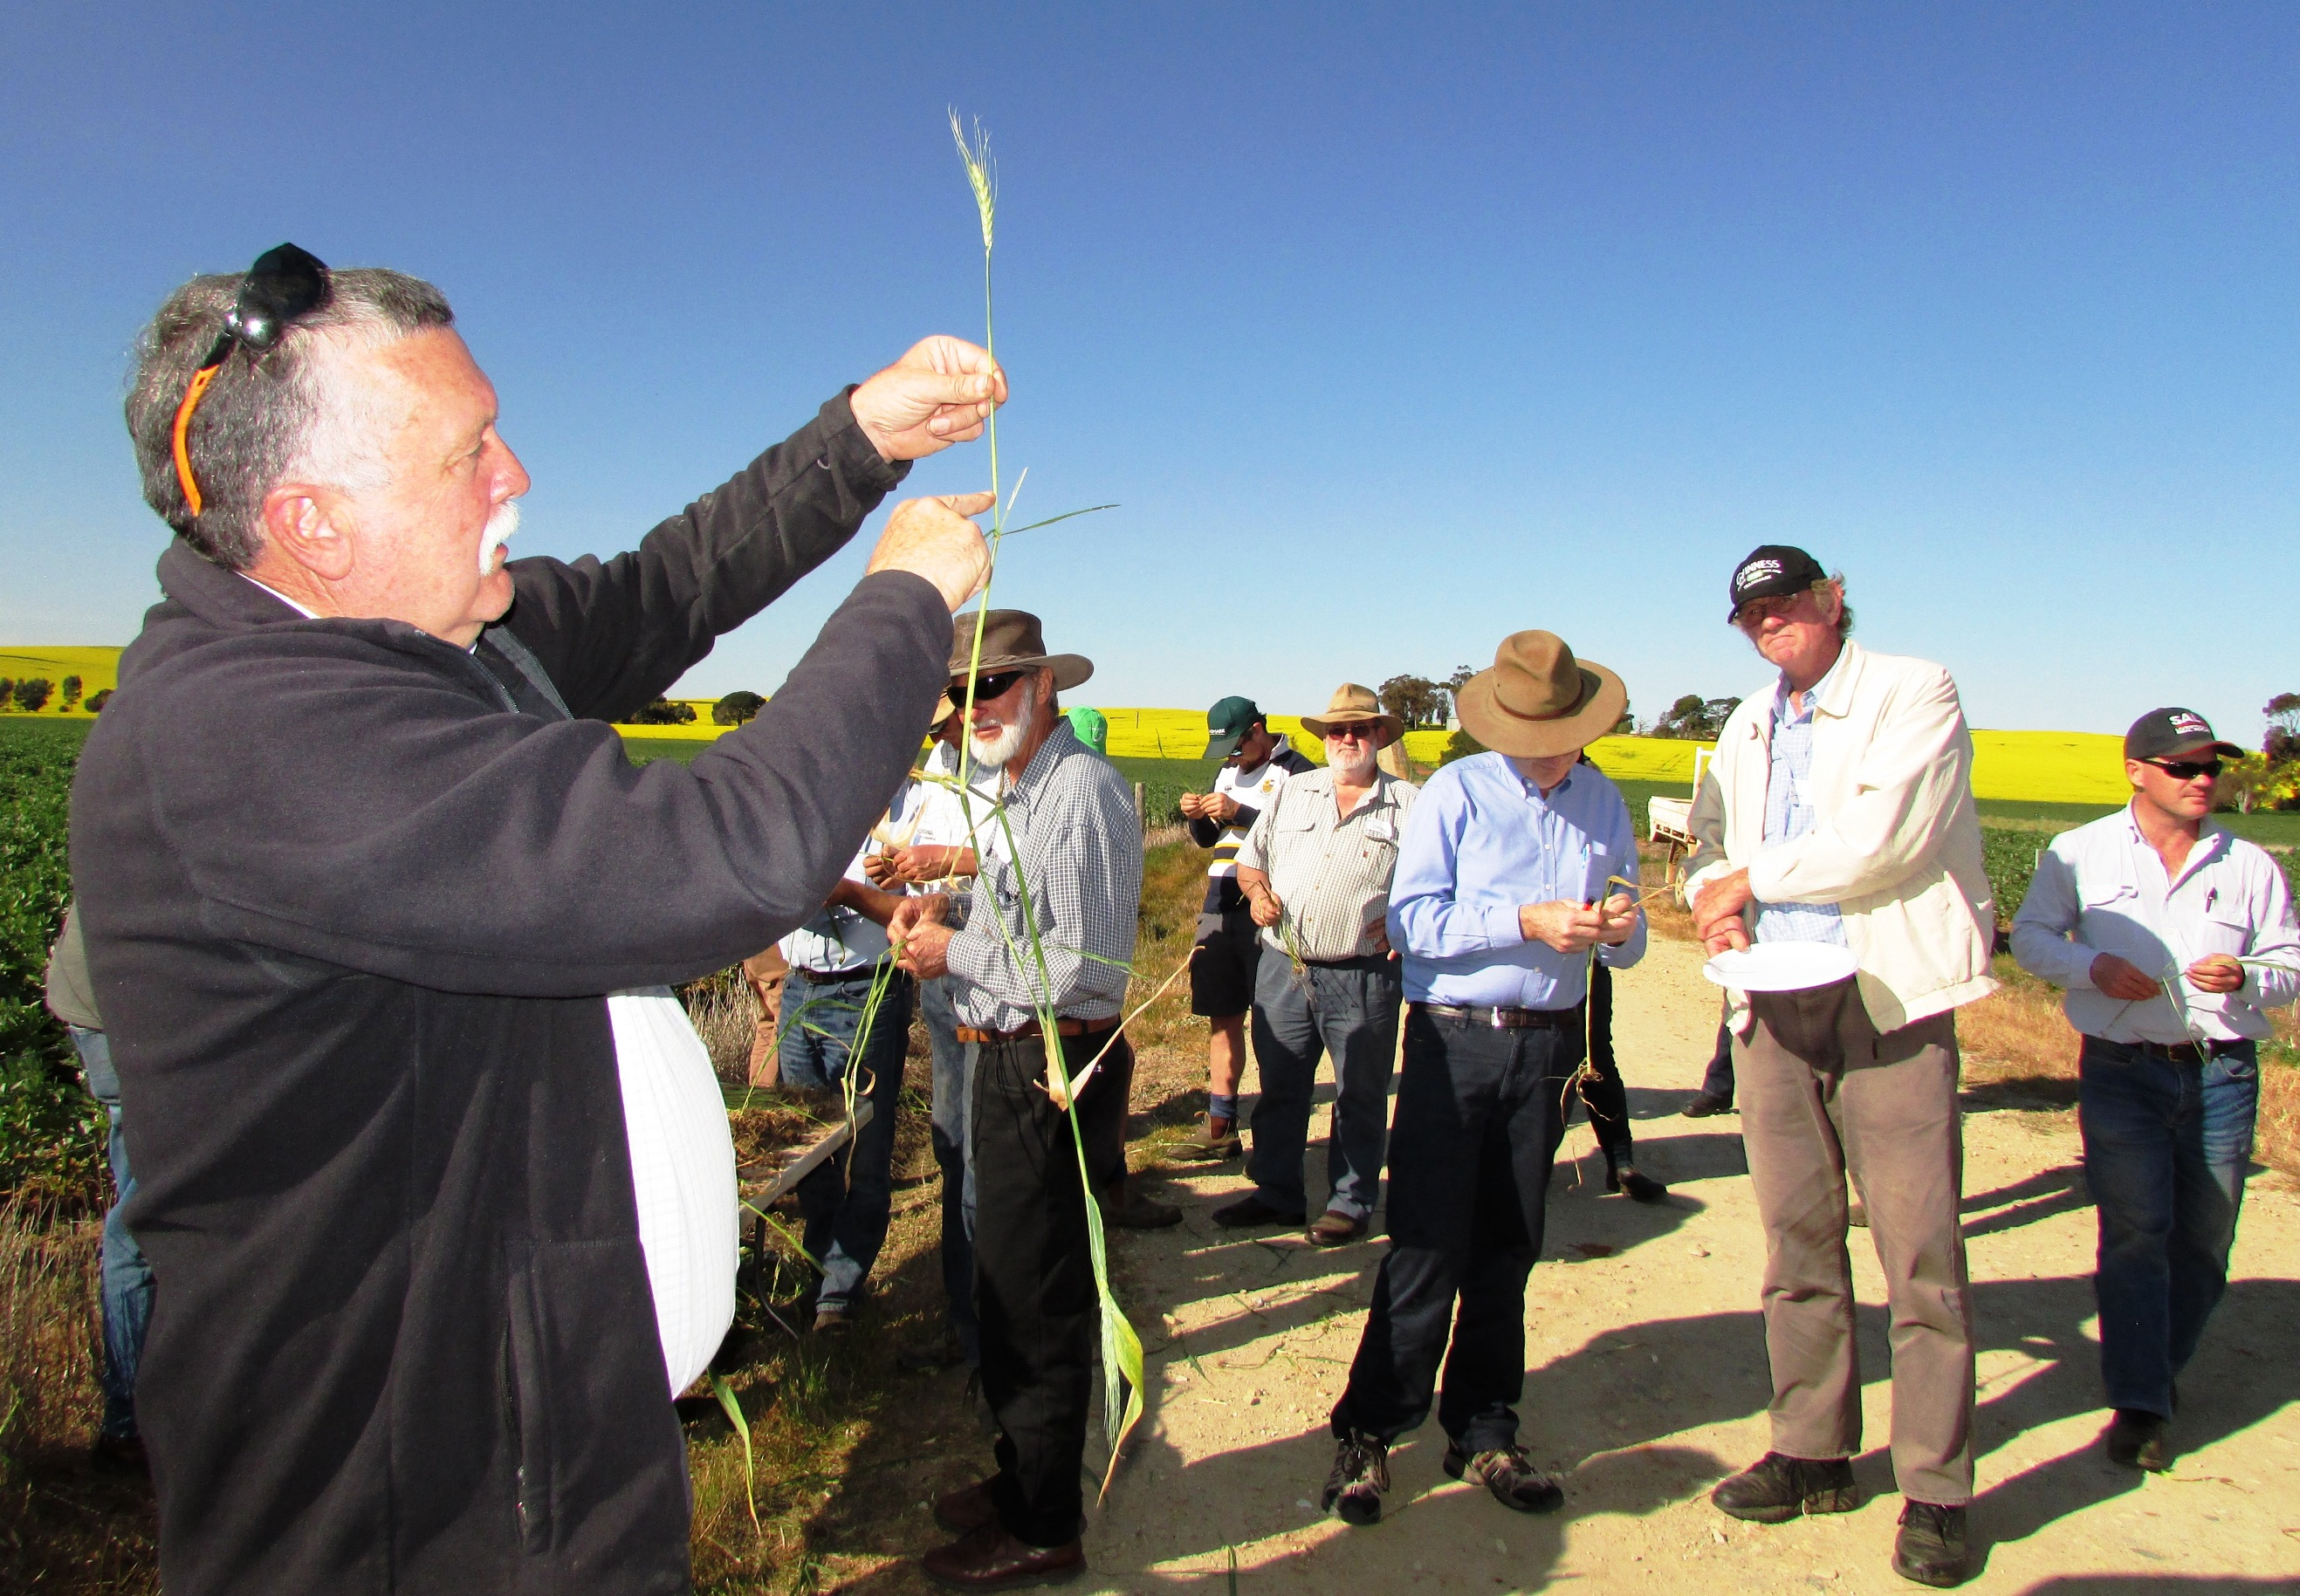 Consultant Mick Faulkner demonstrating how to assess stem frost damage during a GRDC frost management workshop.